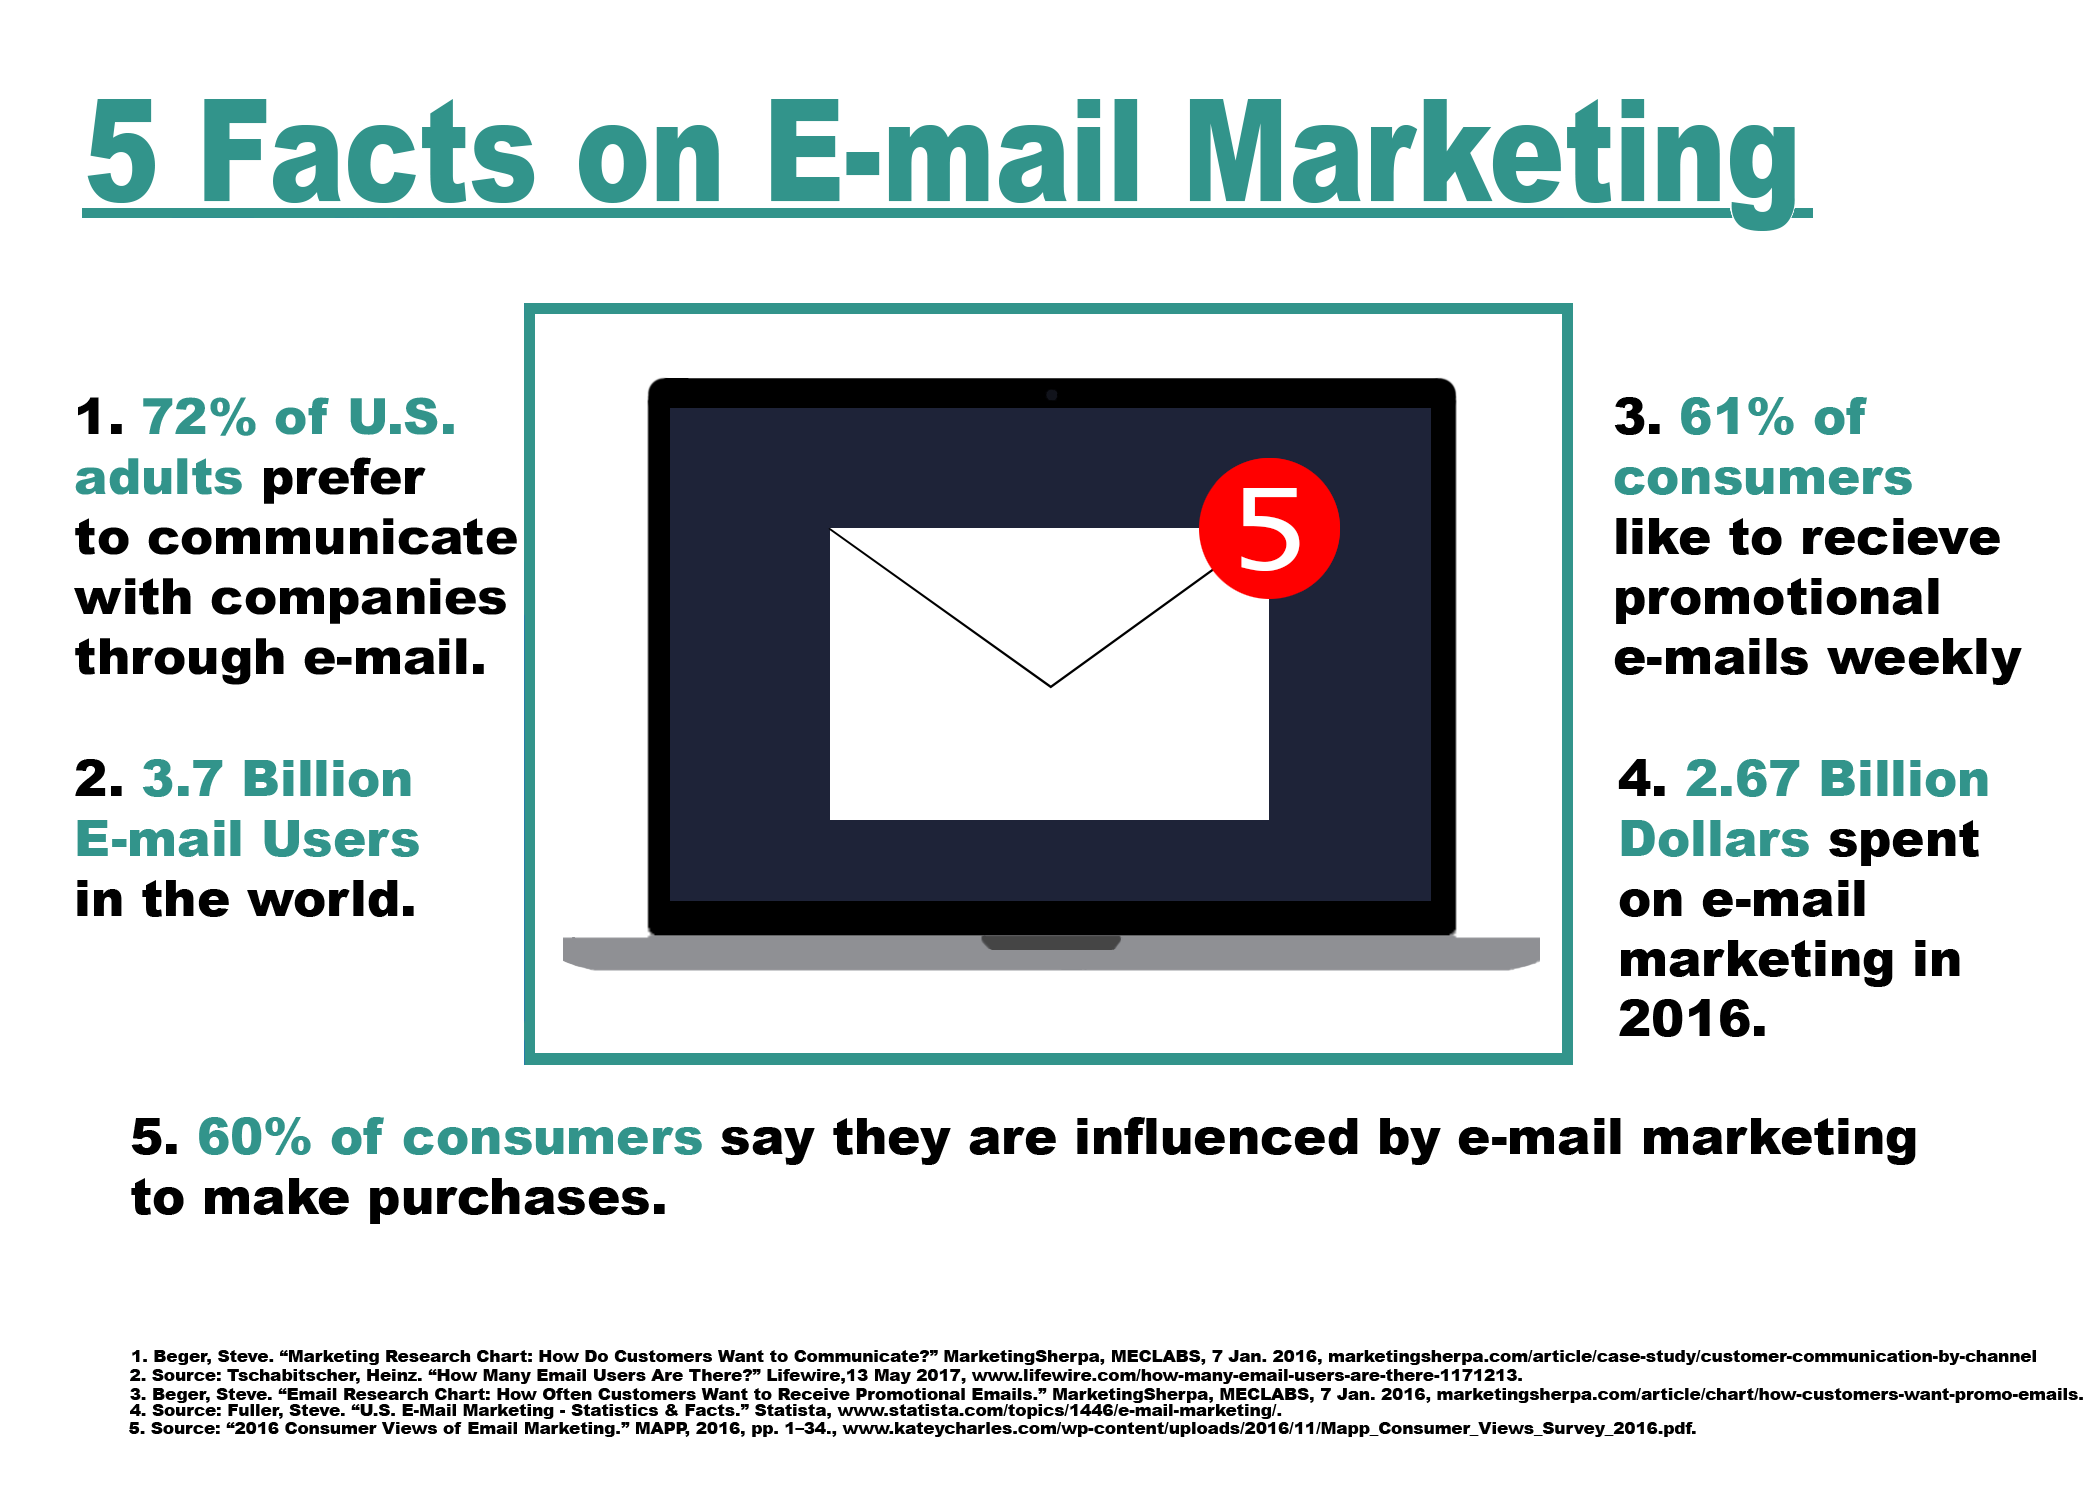 E-mail Marketing Infographic.png